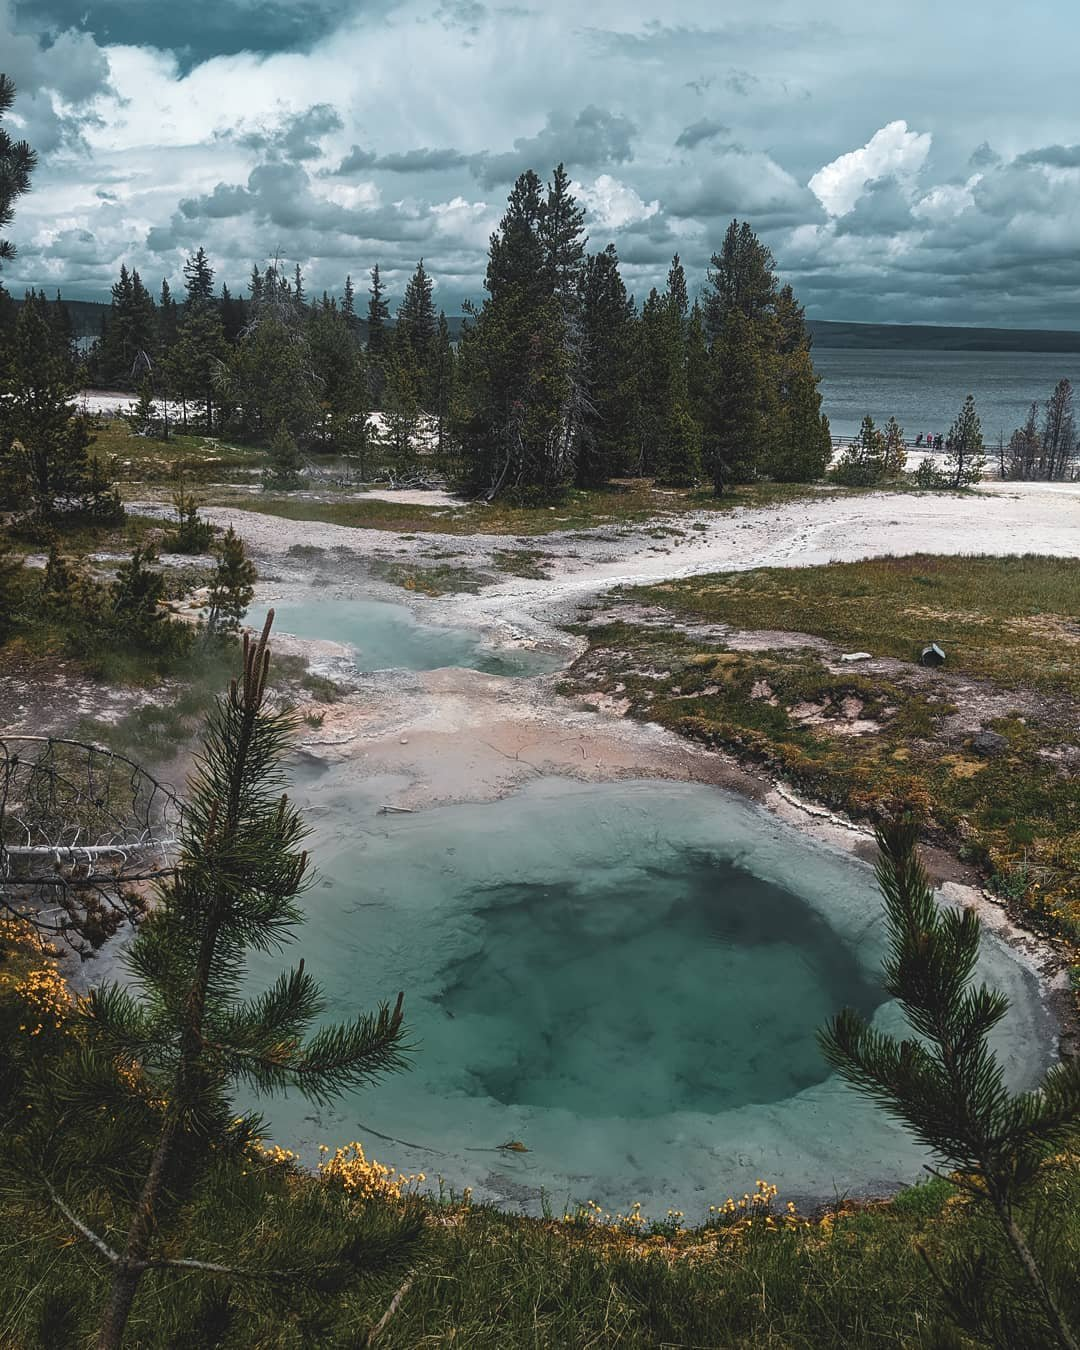 Photo by user jocandelar9, caption reads Life is everywhere , including in and around the most desolate and Maverick of places. . . . . . . #yellowstonenationalpark #nps #findyourpark #prismaticspring #nature #naturehub #optoutside #roadtrip #venture #photooftheday #photography #becurious #hikemore #worryless #backpacker #hiker #traveler #explore #yellowstone #greatoutdoors #besafe #beaware